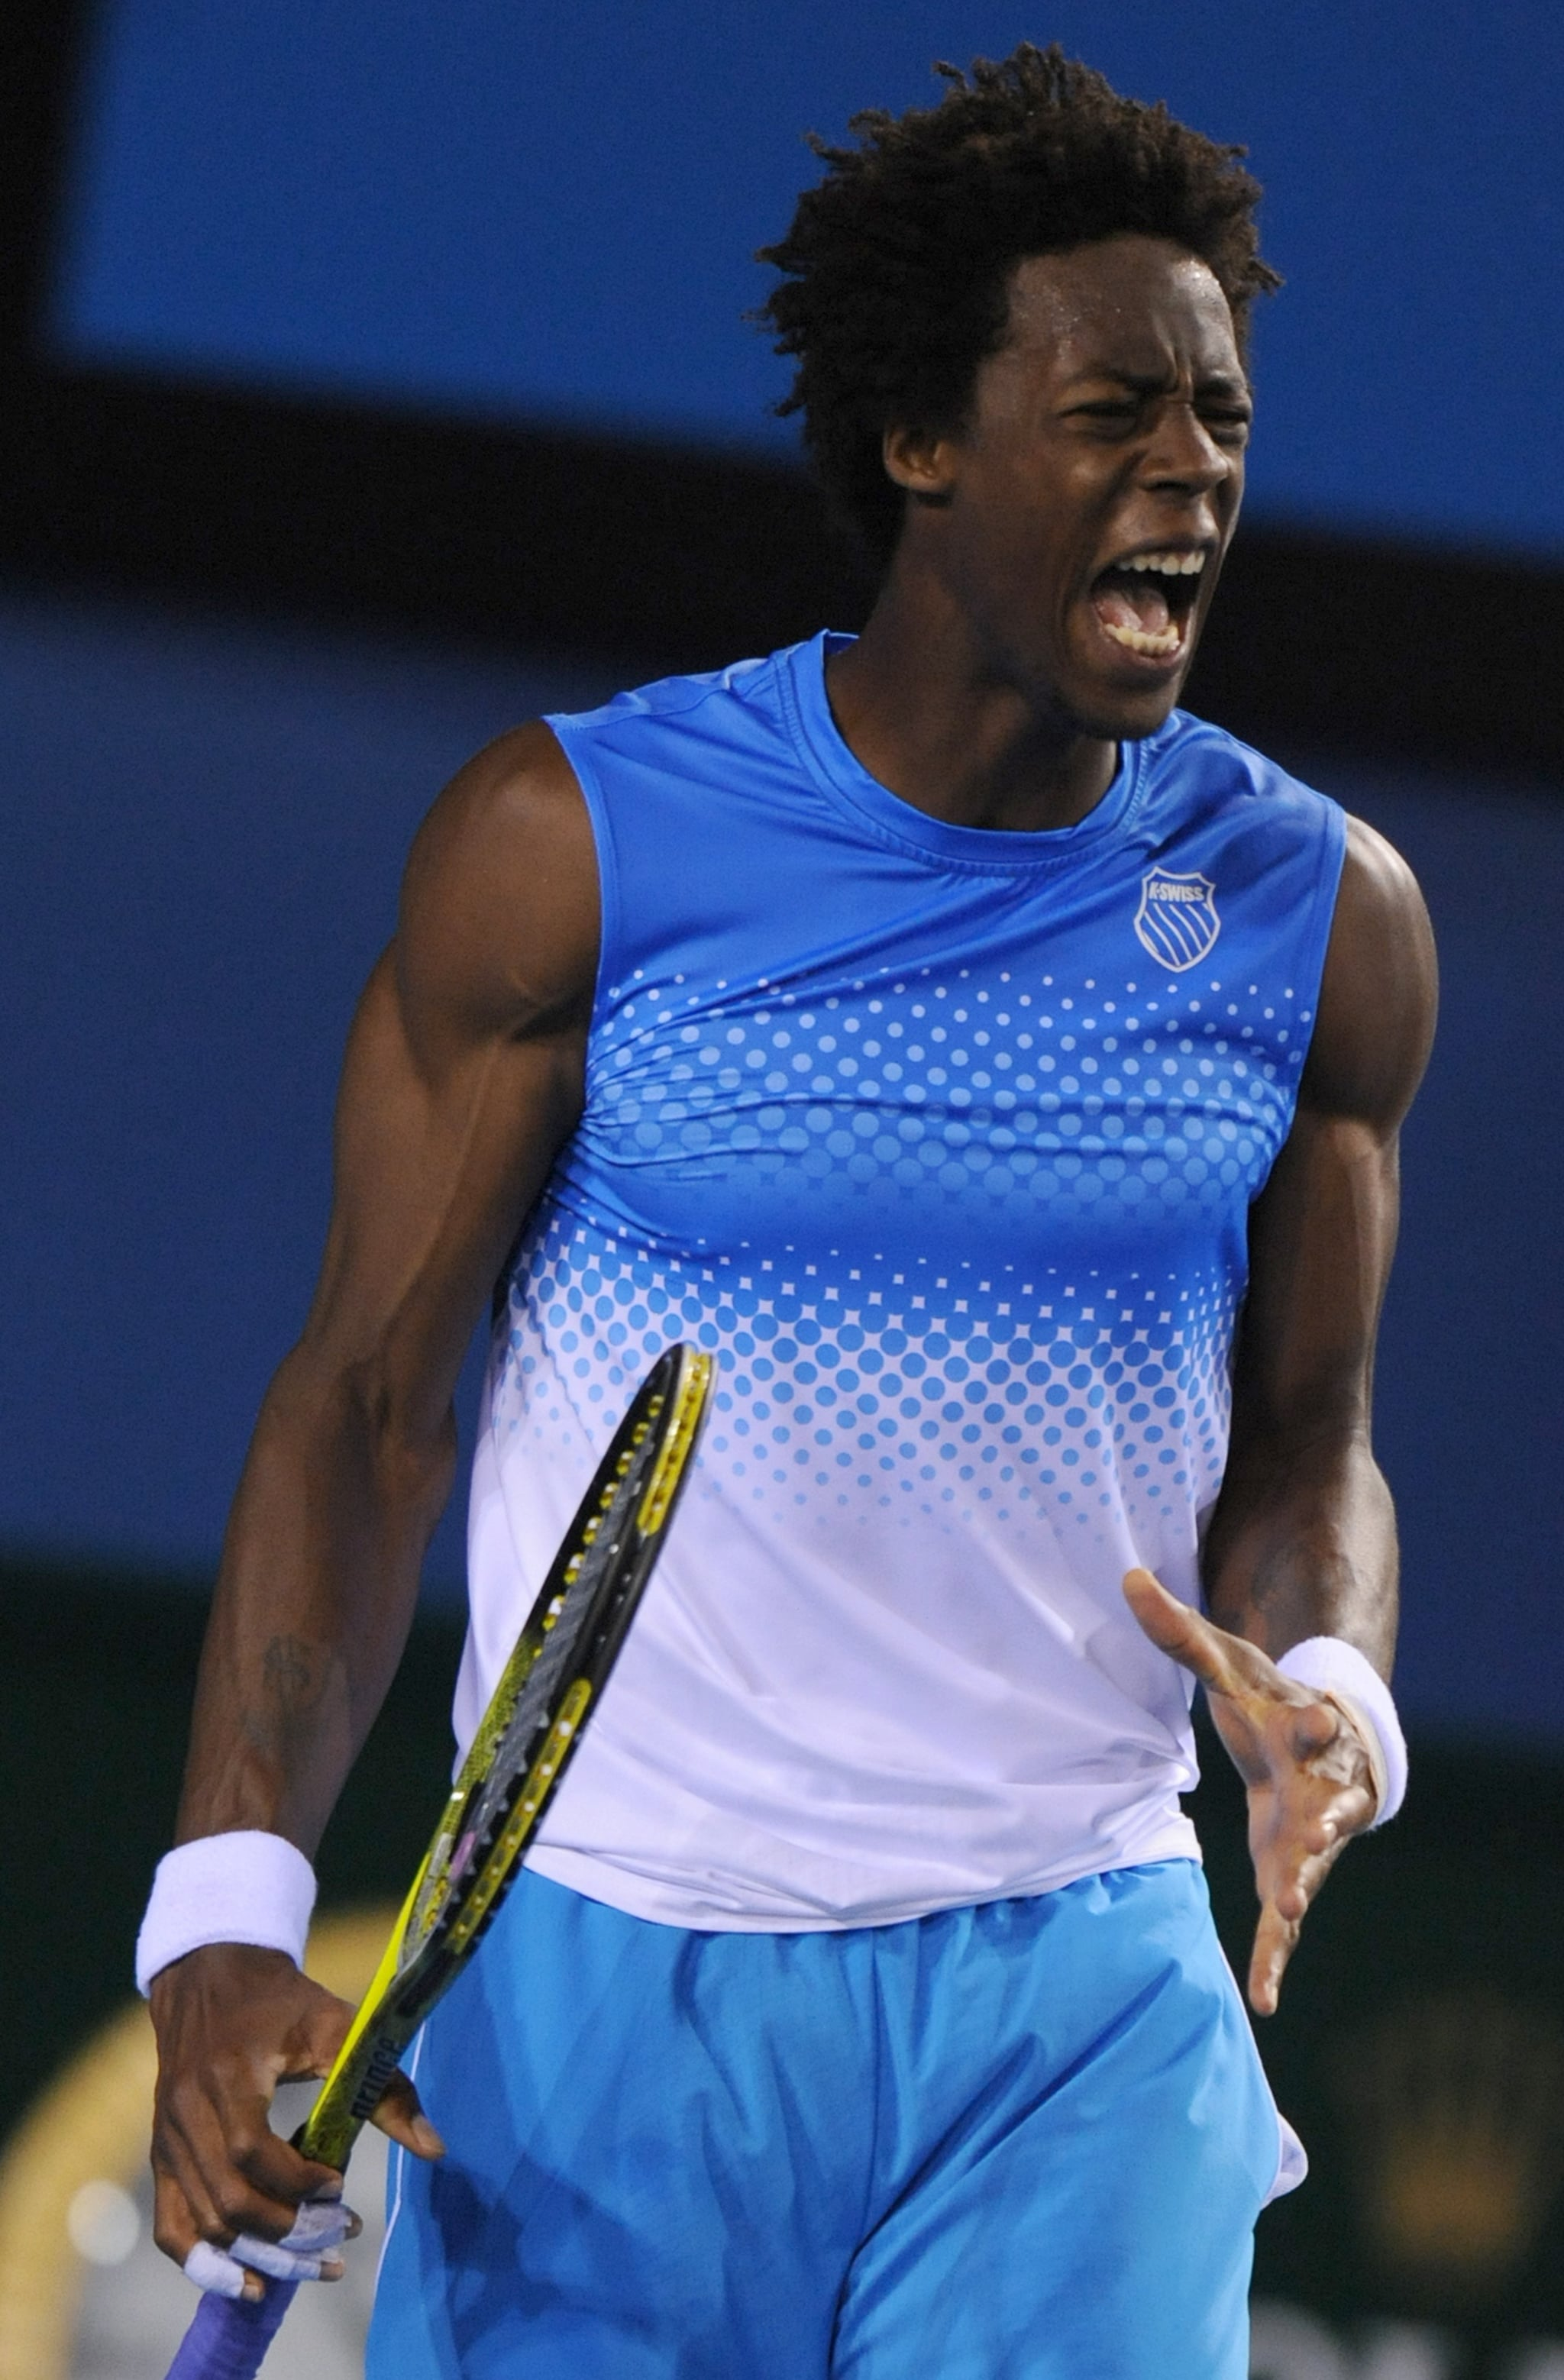 Gael Monfils is one of the best dressed male tennis players as seen here in his white and blue shirts and shorts.